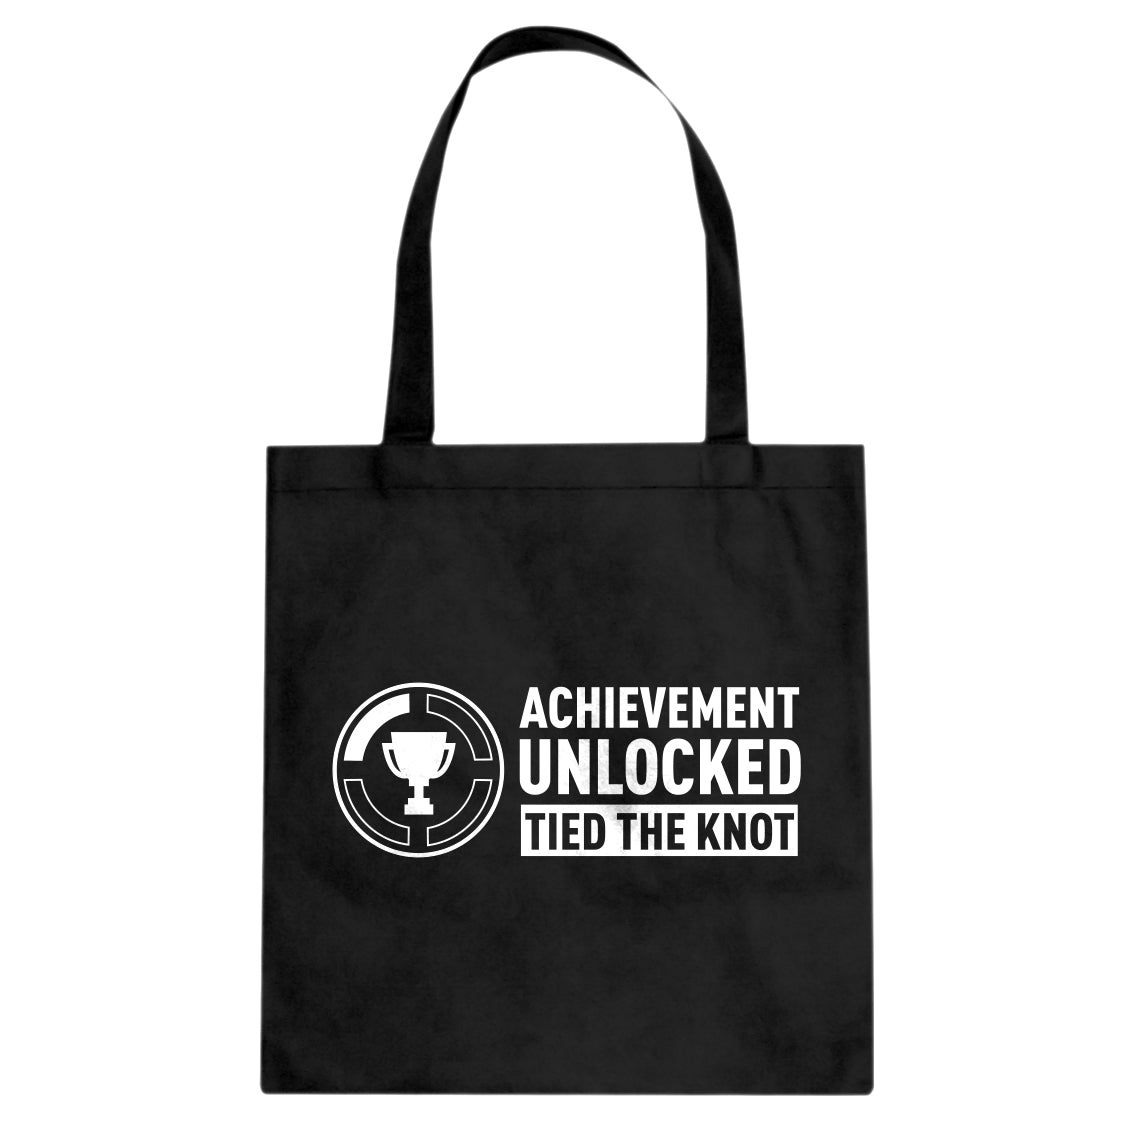 Achievement Unlocked Tied the Knot Cotton Canvas Tote Bag